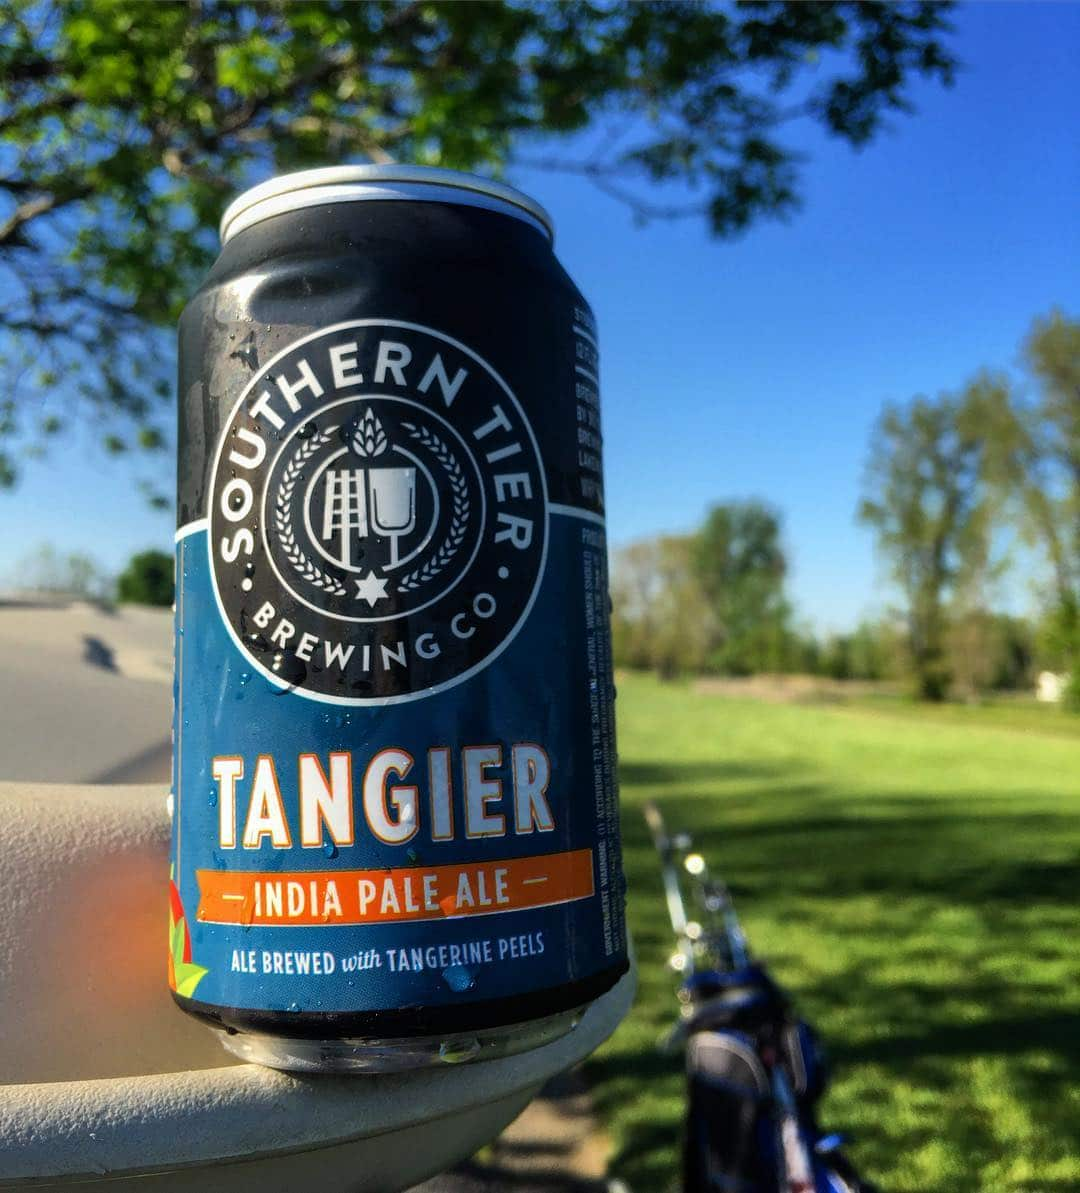 @stbcbeer Tangier on the golf course. Nice and refreshing.